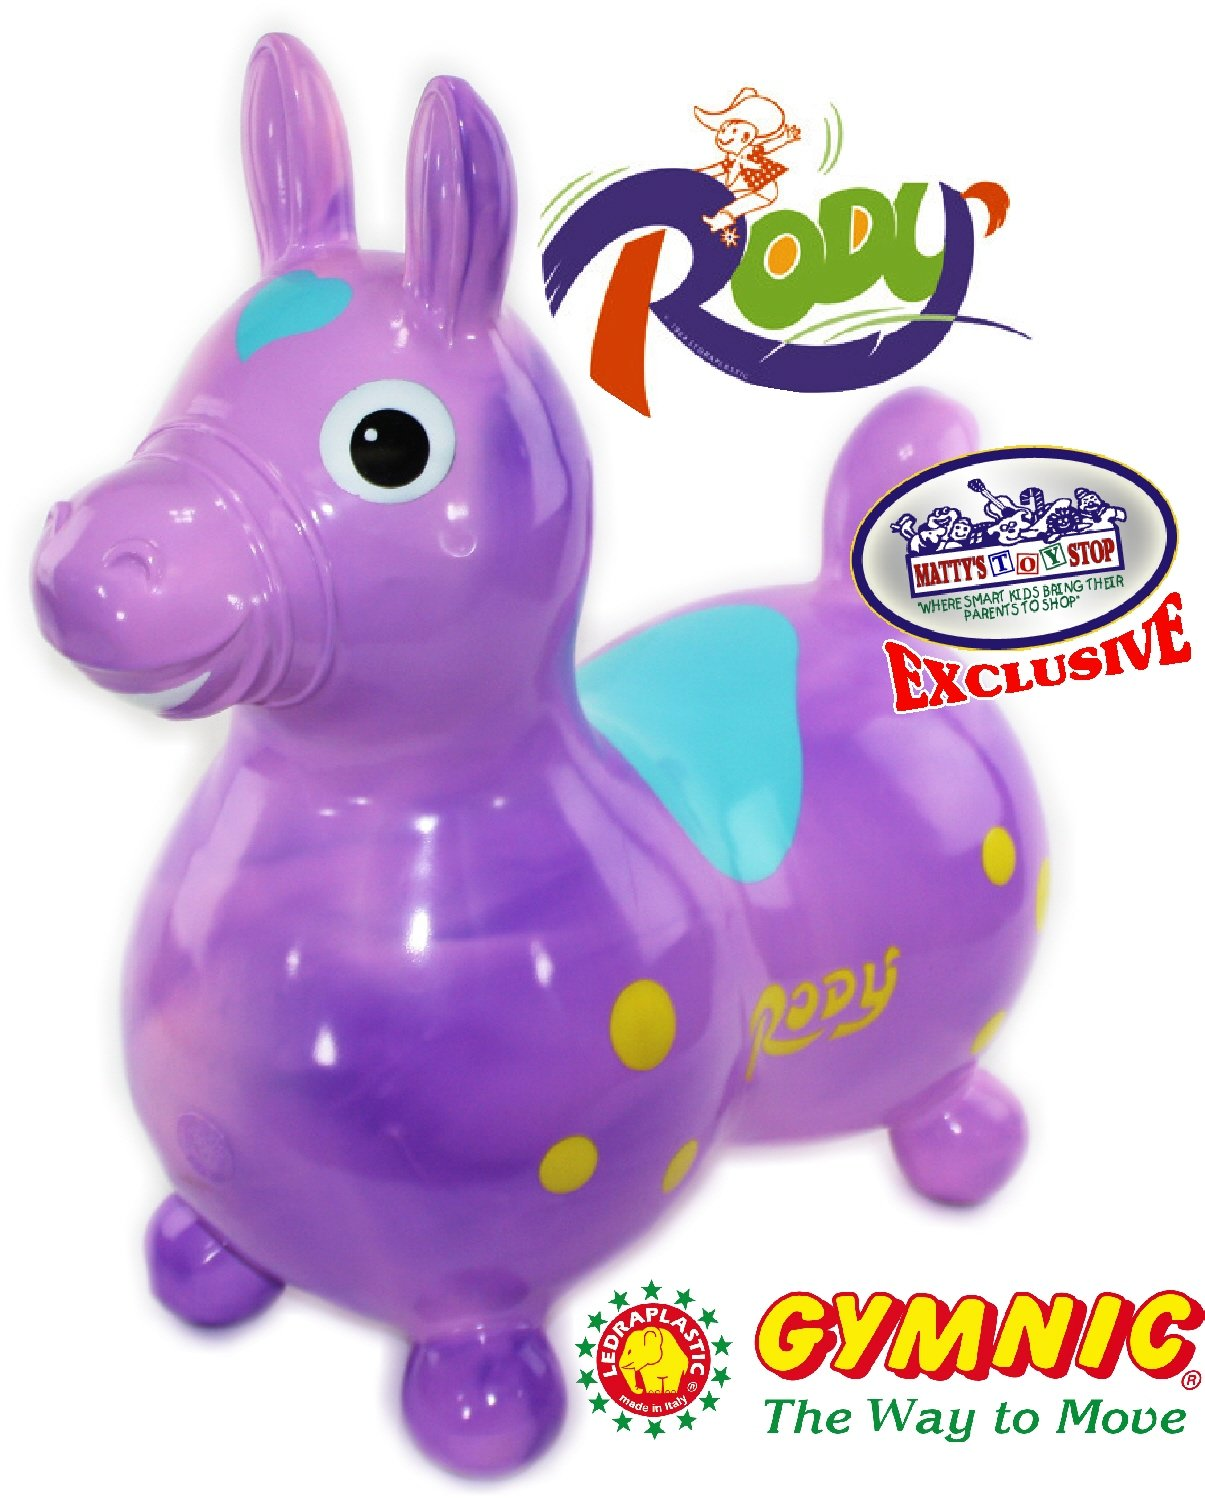 Gymnic Rody Horse Inflatable Bounce Ride Matty's Toy Stop Exclusive Purple Pink Swirl 70254